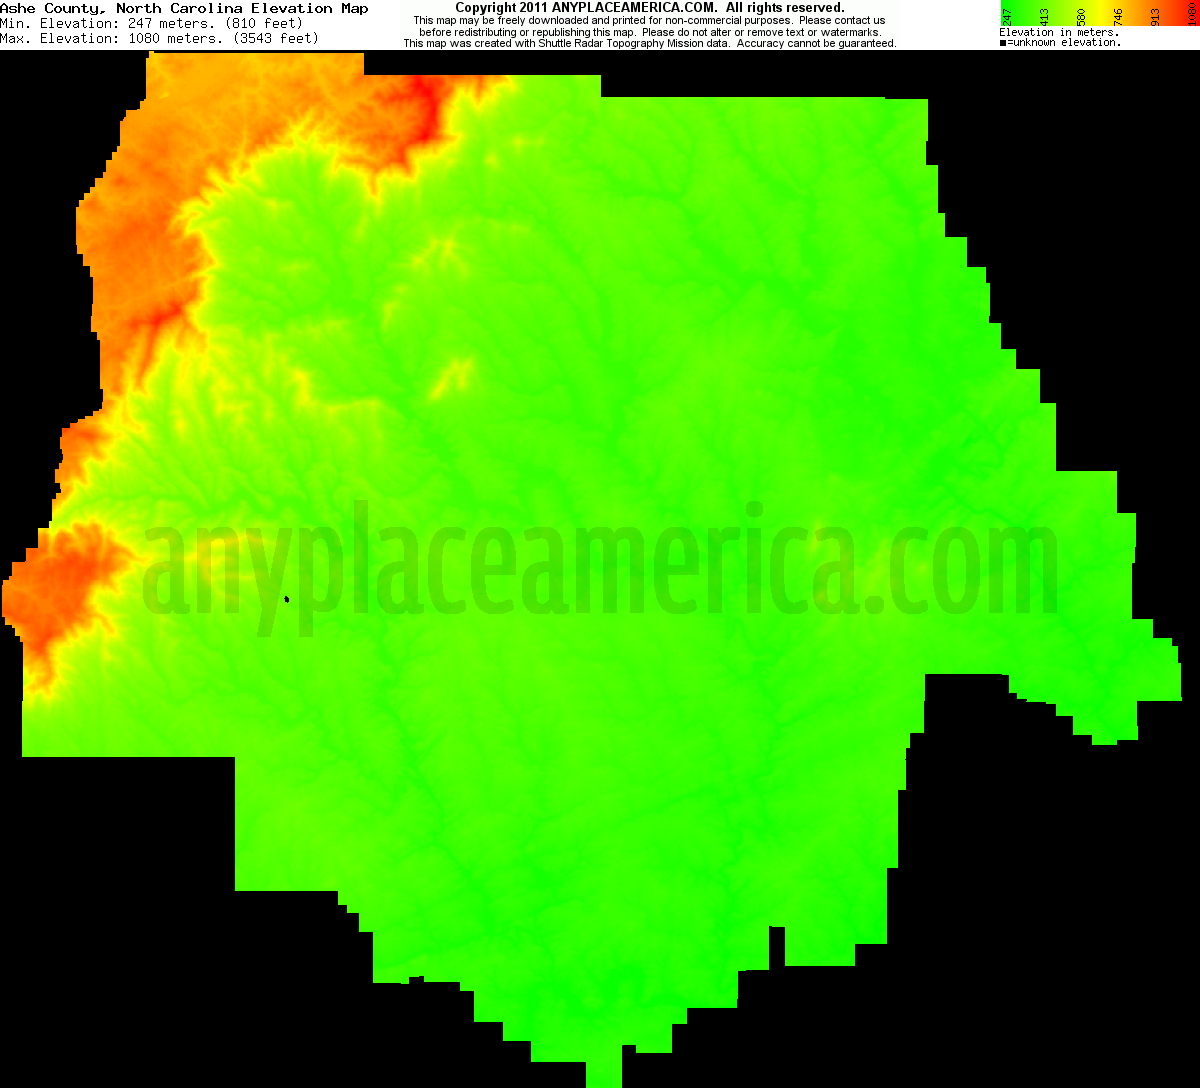 Free Ashe County North Carolina Topo Maps Elevations